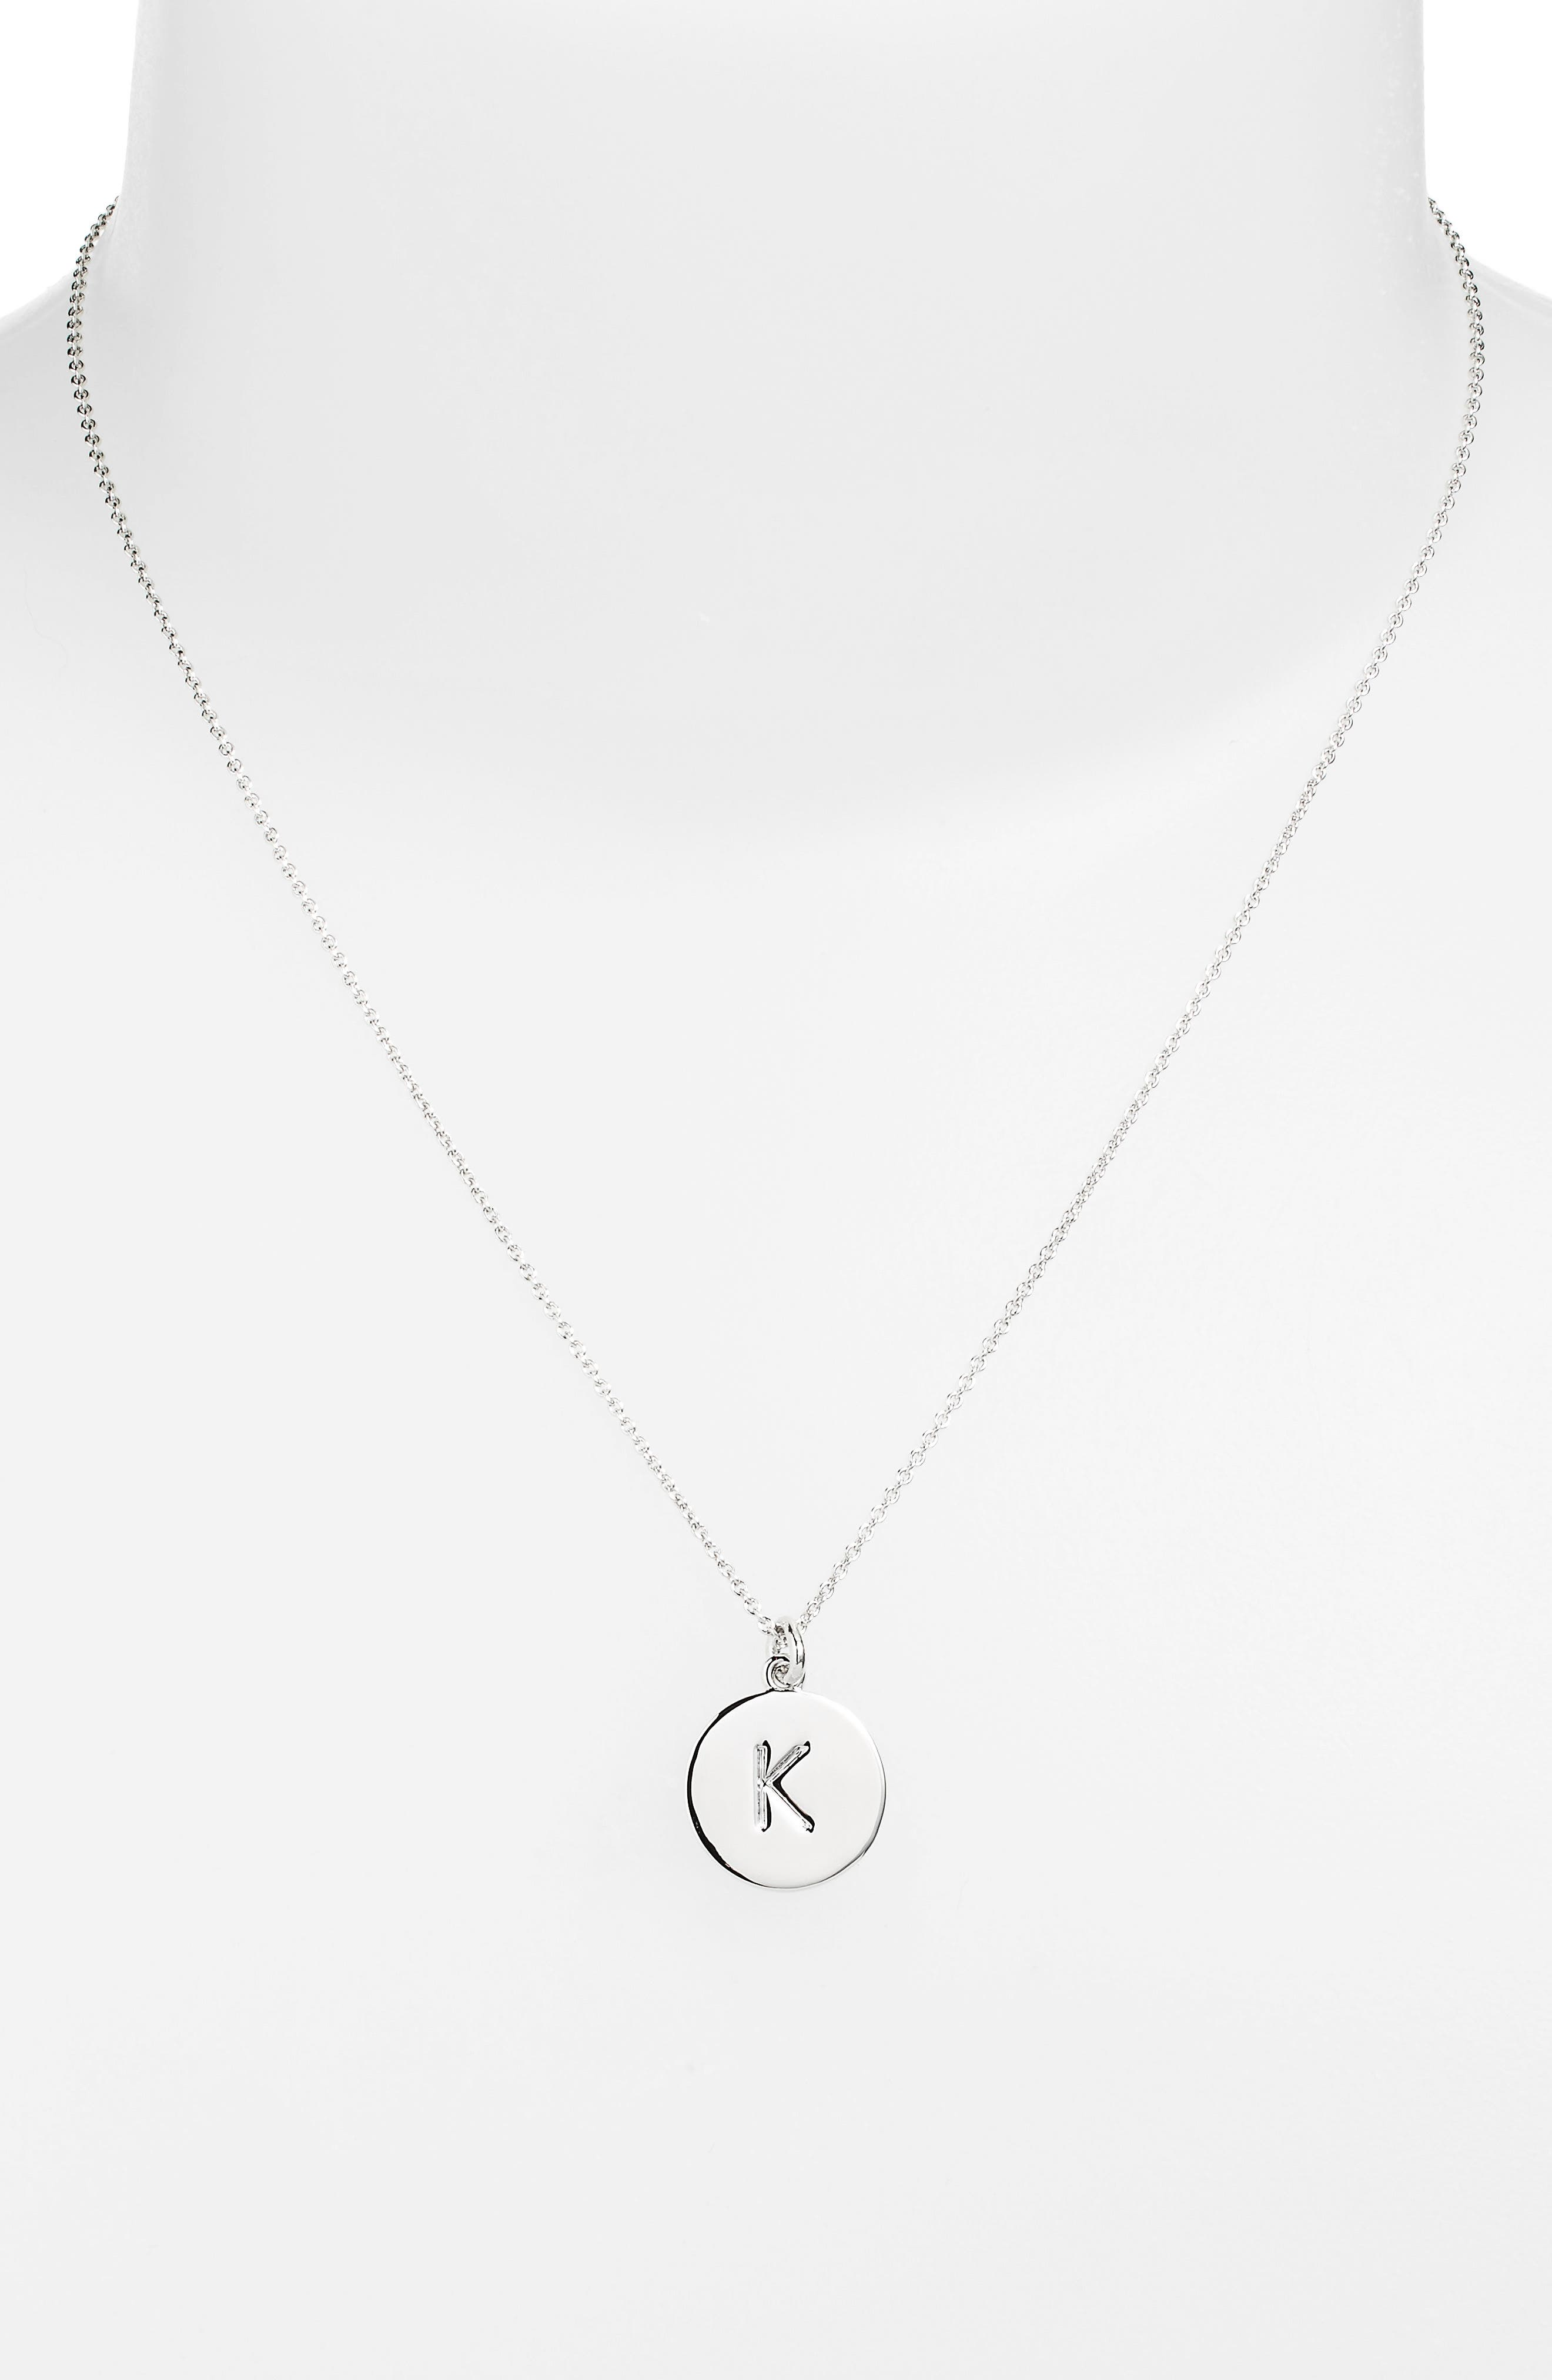 KATE SPADE NEW YORK, 'one in a million' initial pendant necklace, Main thumbnail 1, color, SILVER K